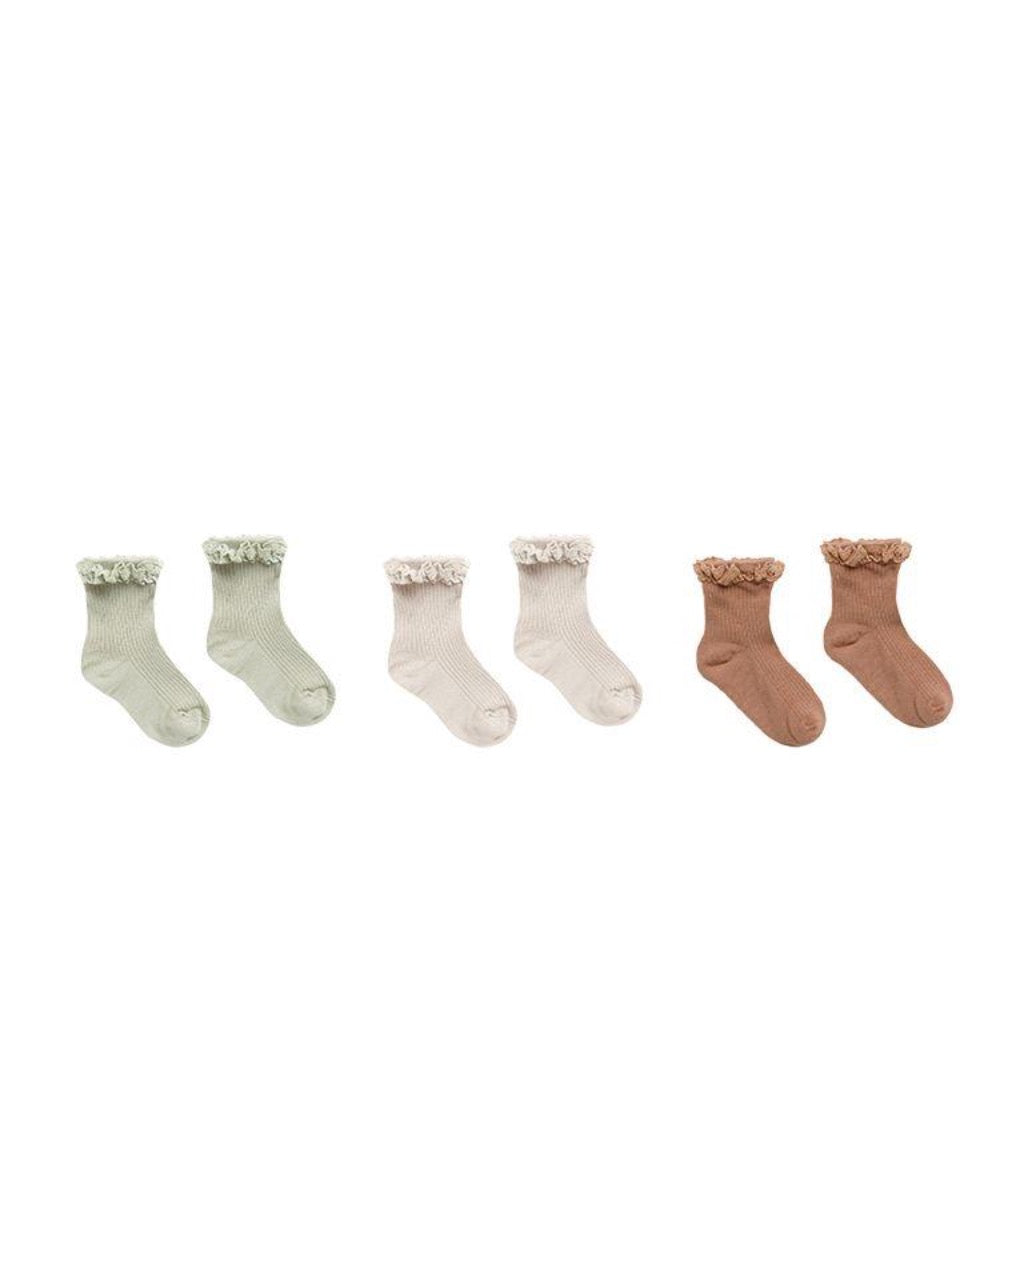 Rylee & Cru Lace Trim Socks Set of 3 in Sage-Shell-Terracotta